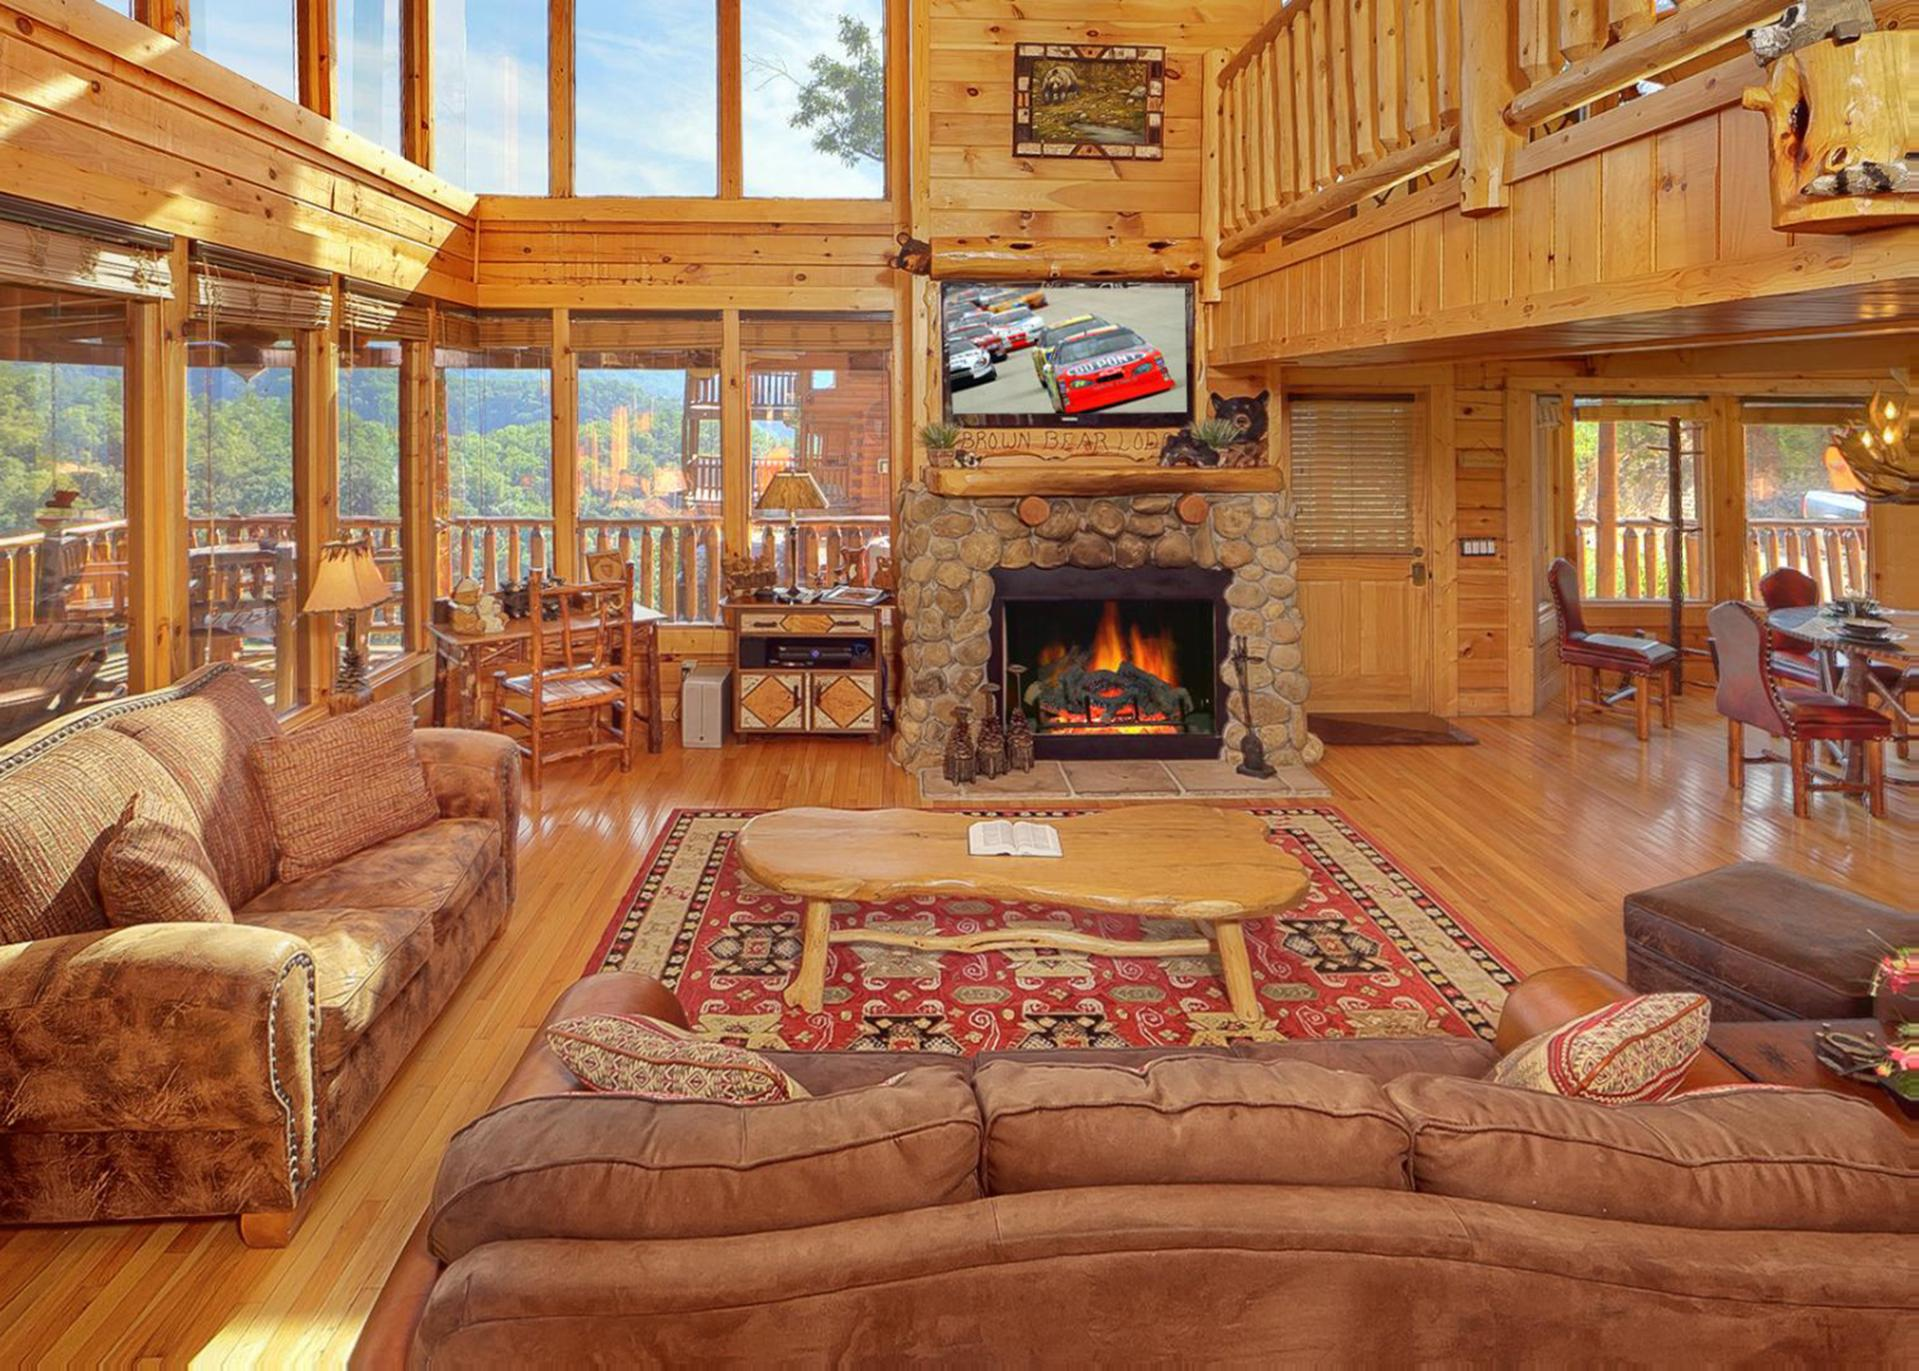 Rooms View Televisions And Family And Fireplaces